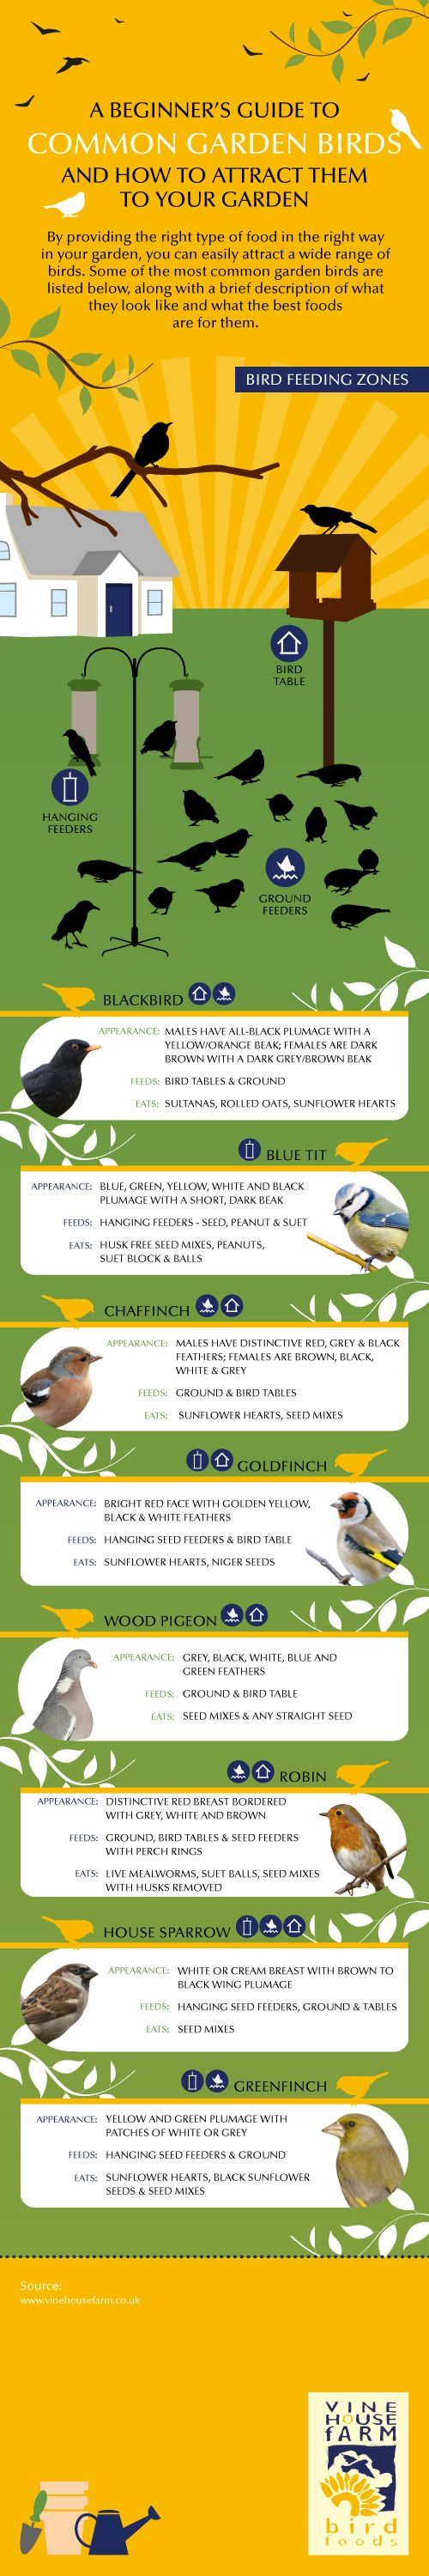 Infographic on attracting common garden birds from Vine House Farm.  http://wtru.st/ZVXxmY